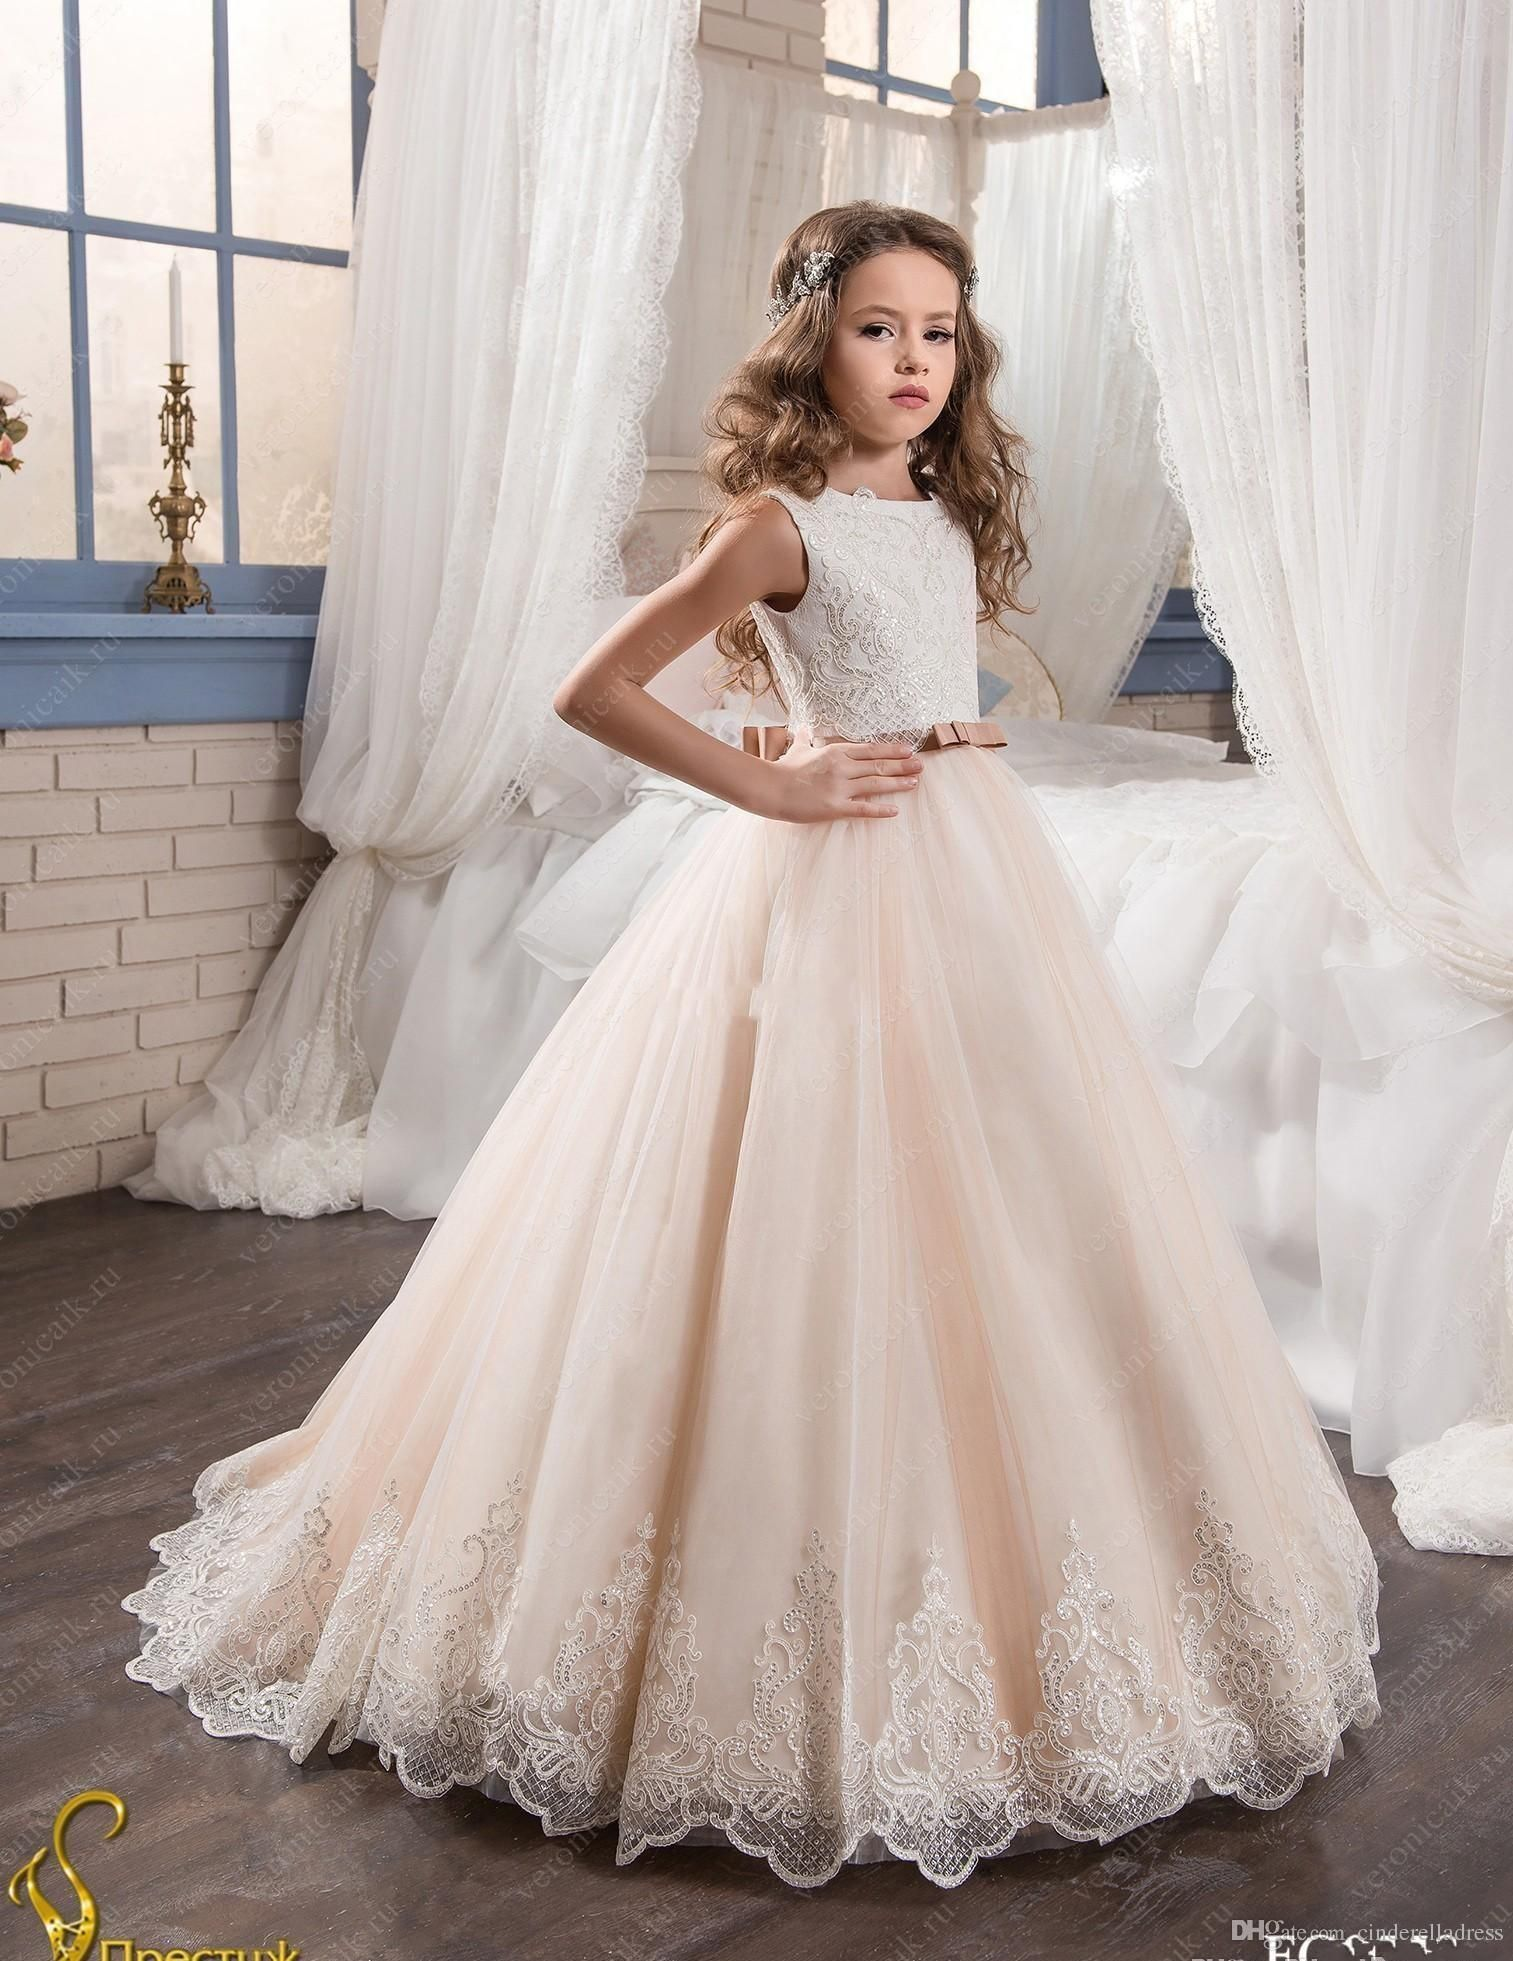 f6f2f9aee58 2019 Vintage Flower Girl Dresses For Weddings Blush Pink Custom Made ...